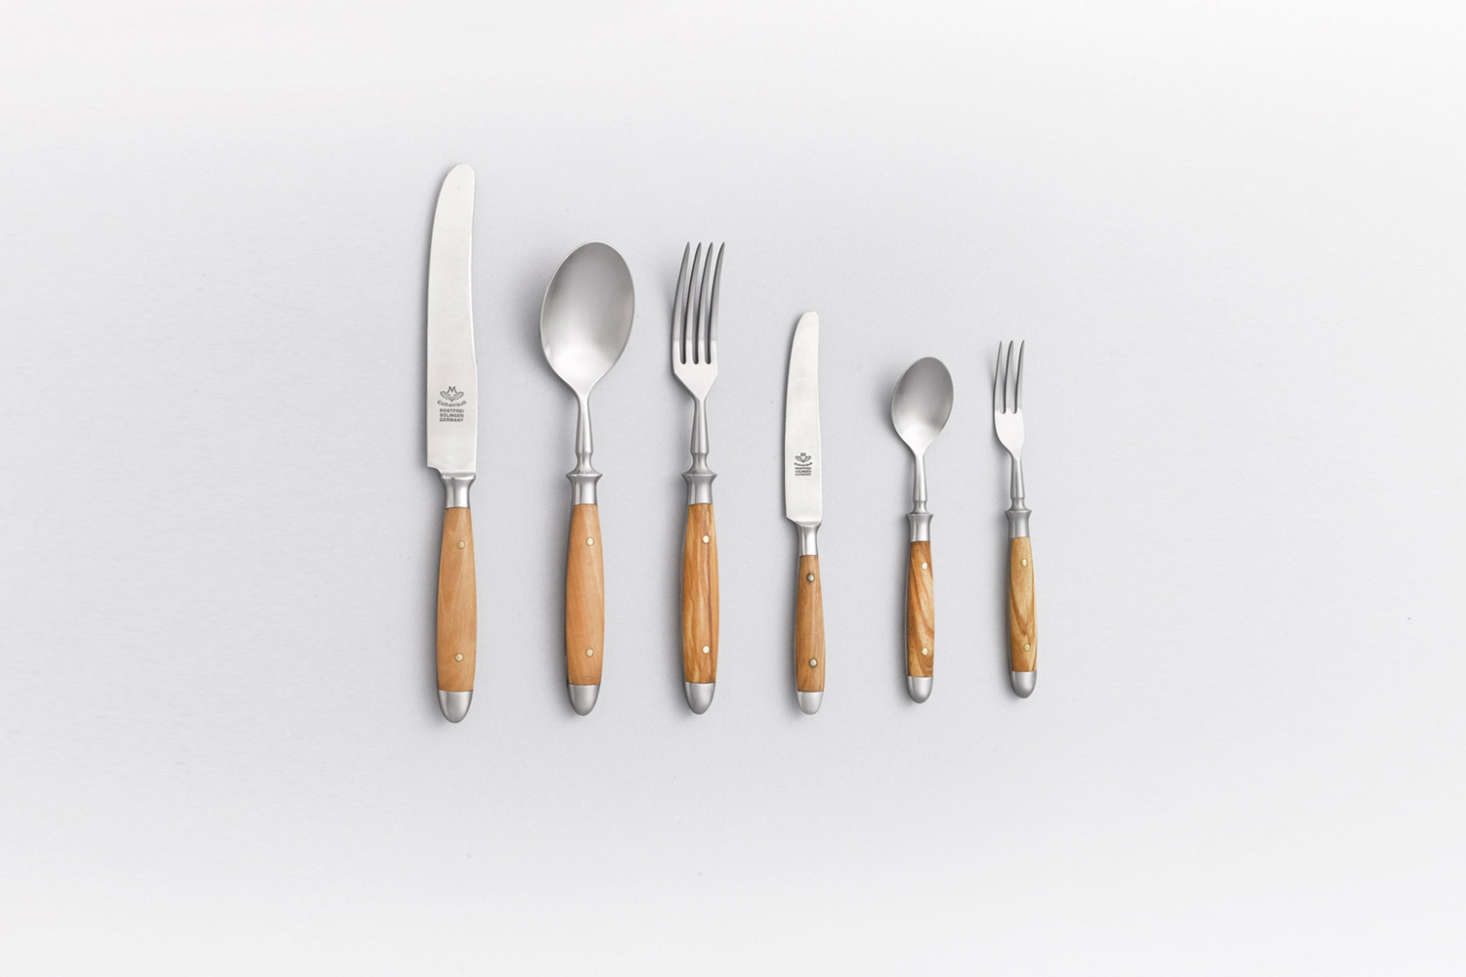 Eichenlaub Flatware, forged in Solingen, Germany, are each made from a single piece of stainless steel and finished with wood, horn, or acrylic handles. The set shown here, in light oak, is available in Japan at Arts & Science and online at Scharfer Laden in Germany; €53. per piece.